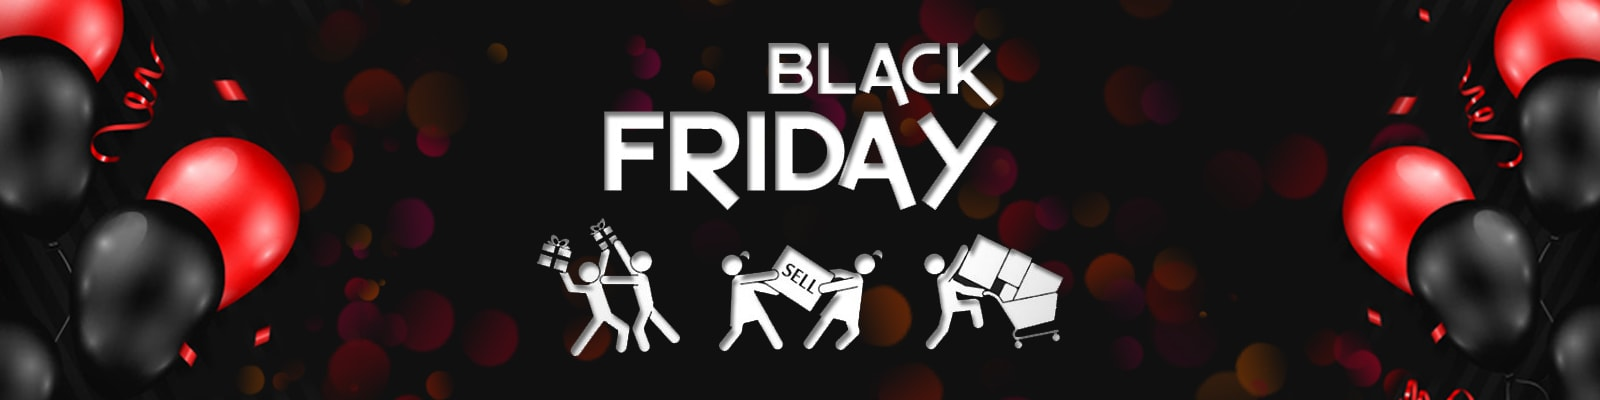 Black Friday Coupons 2019